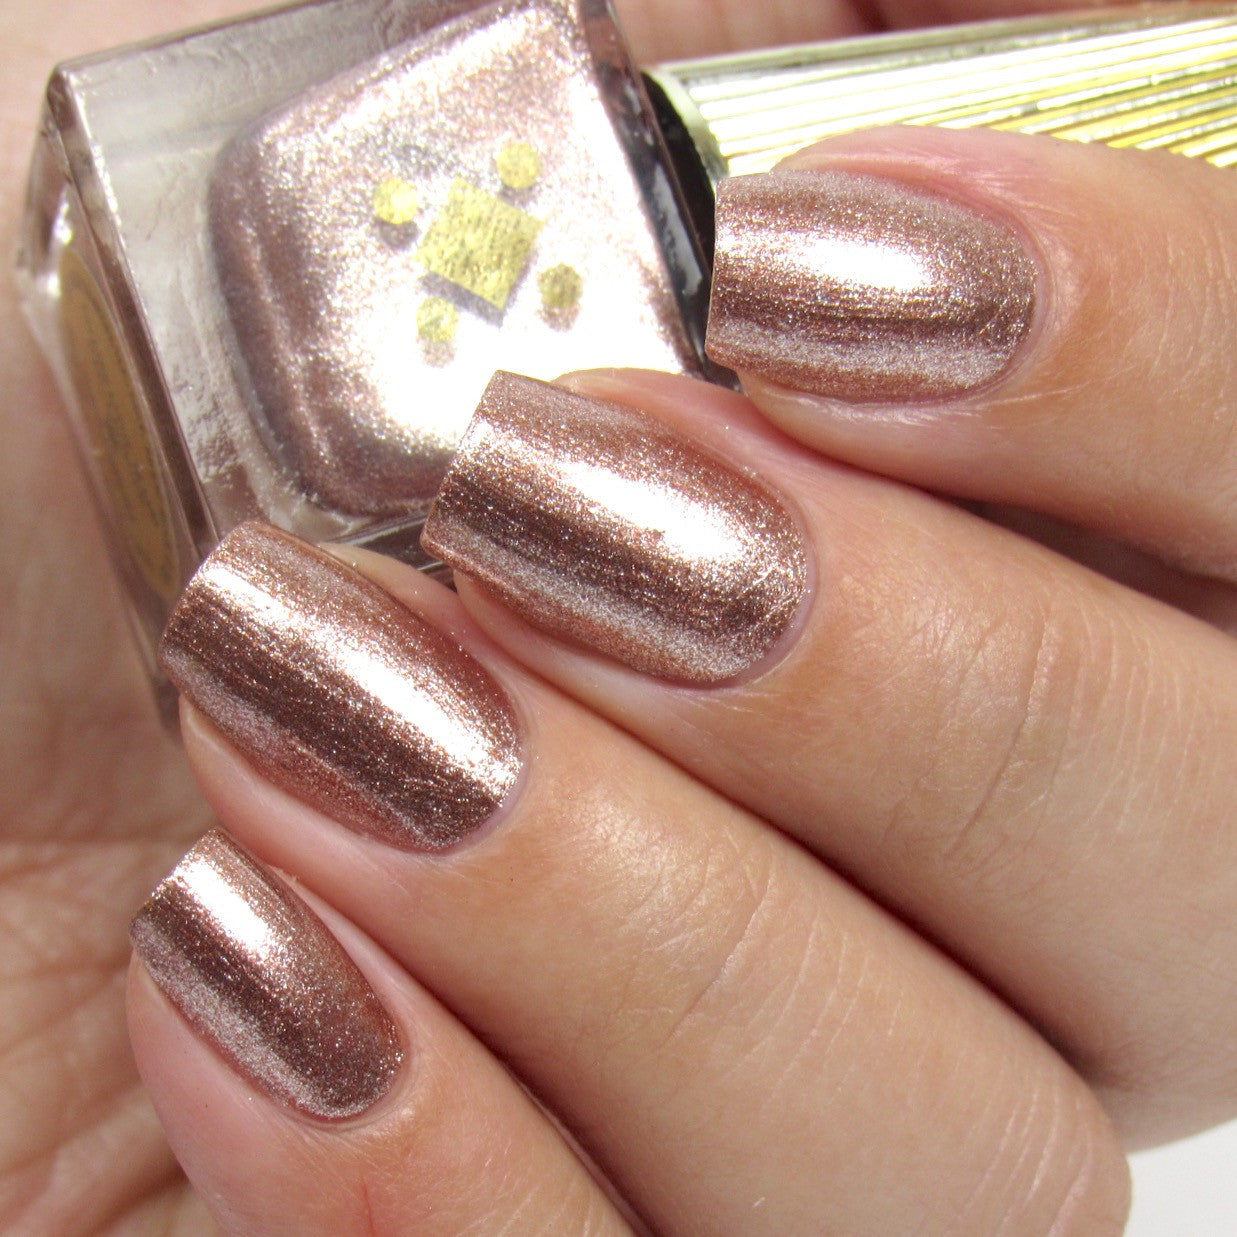 CHAMPAGNE MAMI  - rose gold metallic nail lacquer by Deco Miami